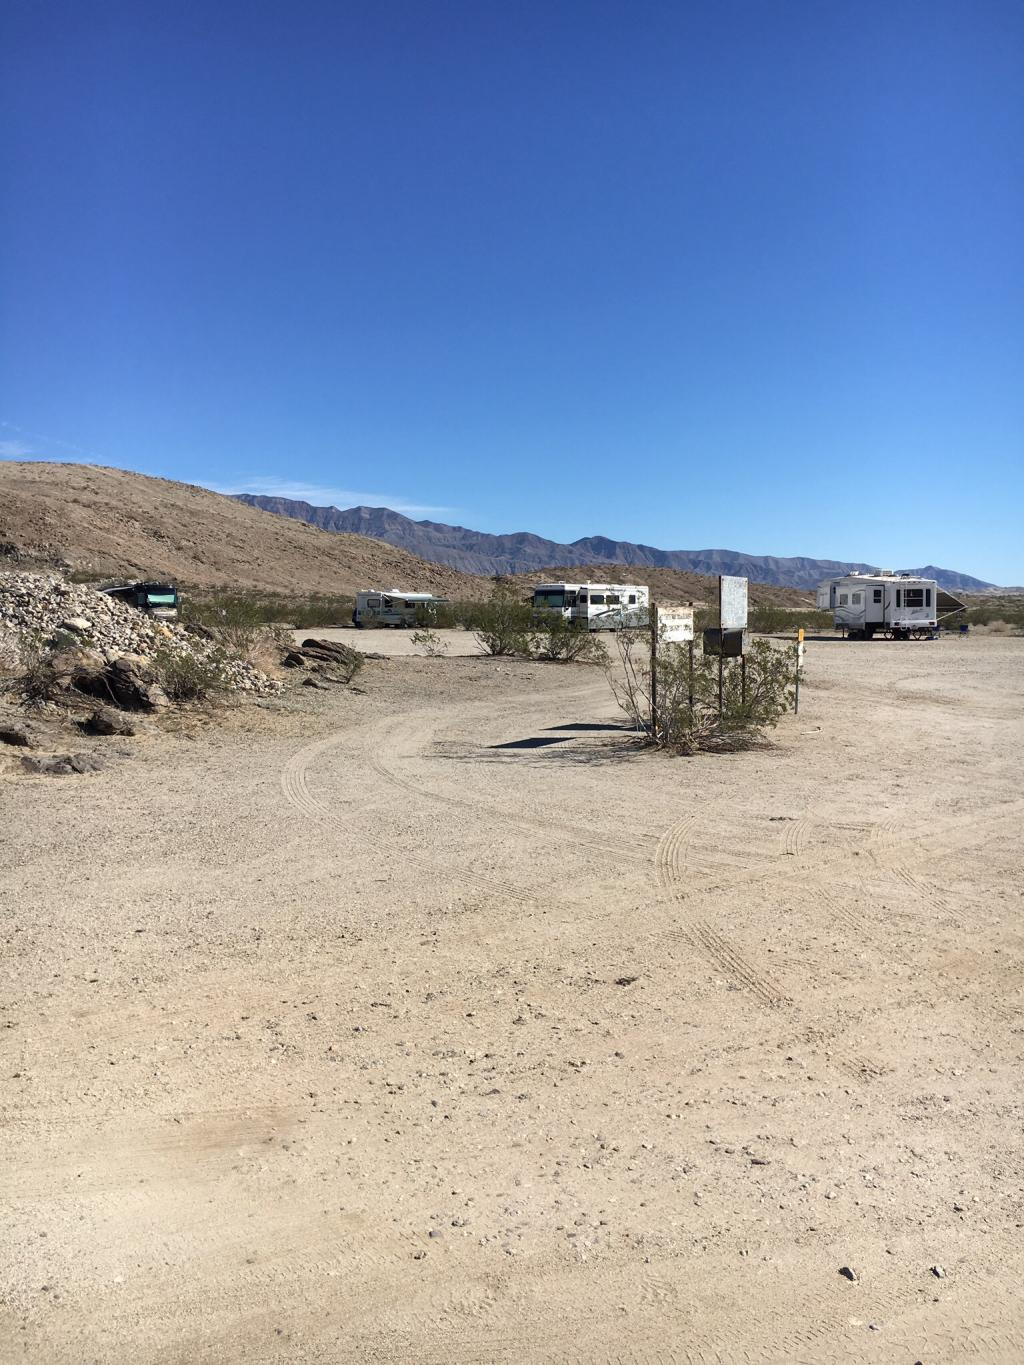 Peg Leg Campground Anza Borrego Desert Borrego Springs